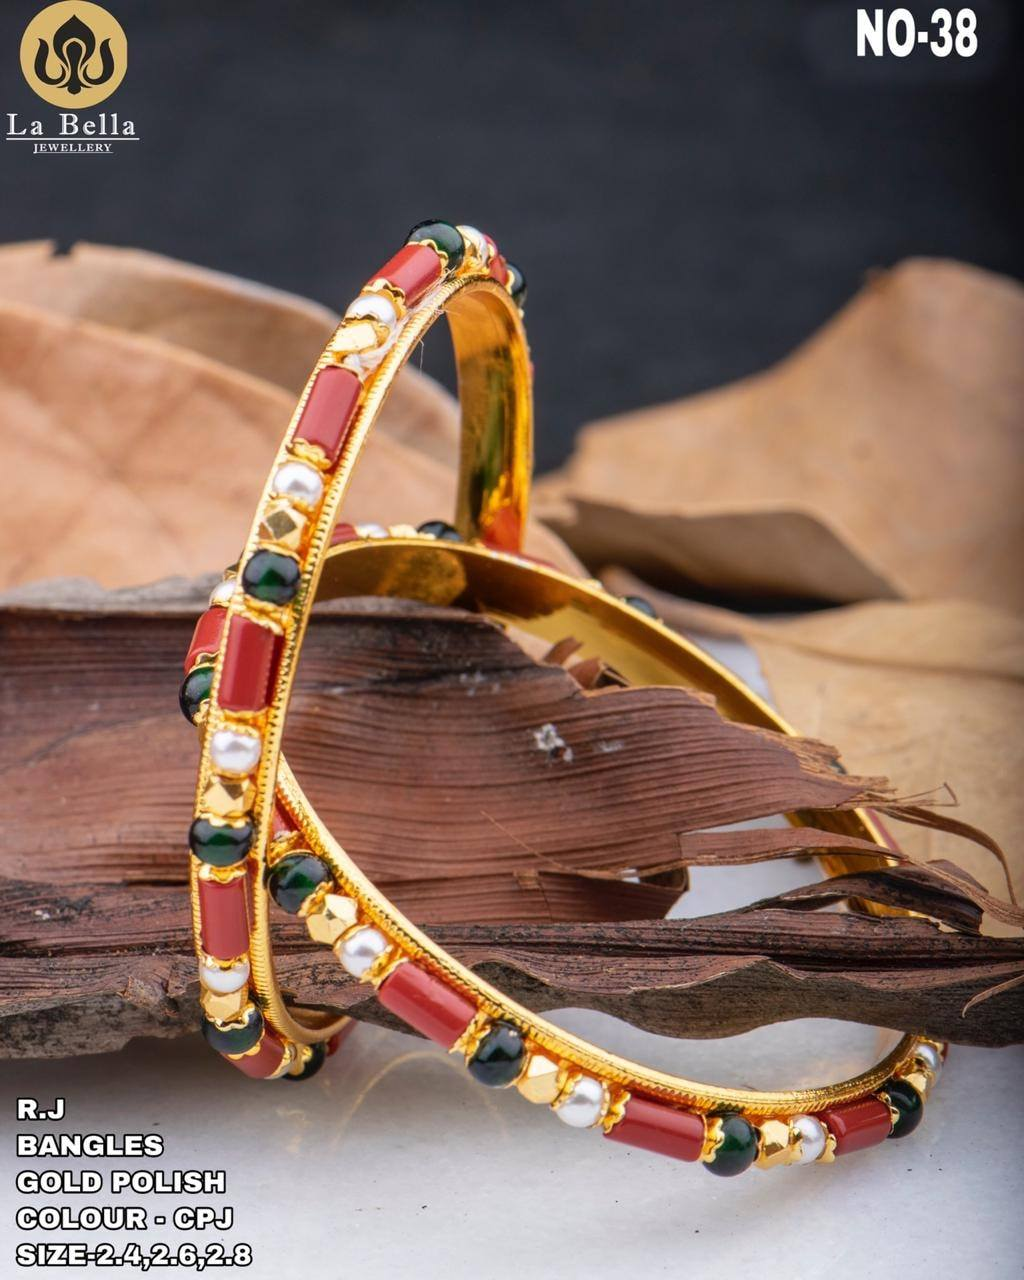 Gorgeous one gram gold bangles studded with multi color stones.